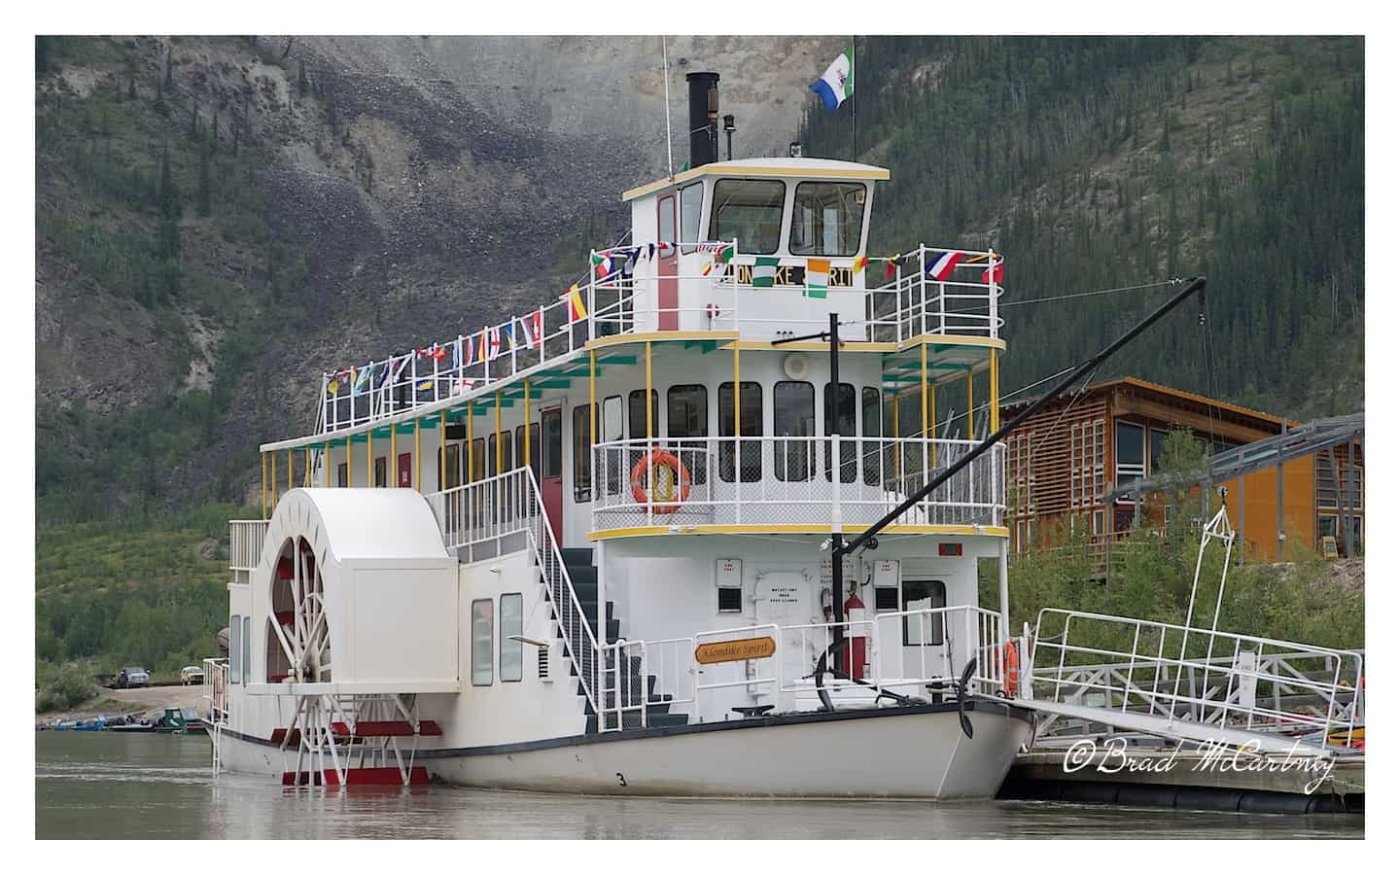 At one time there were as many as 250 paddlesteamers working the Yukon River